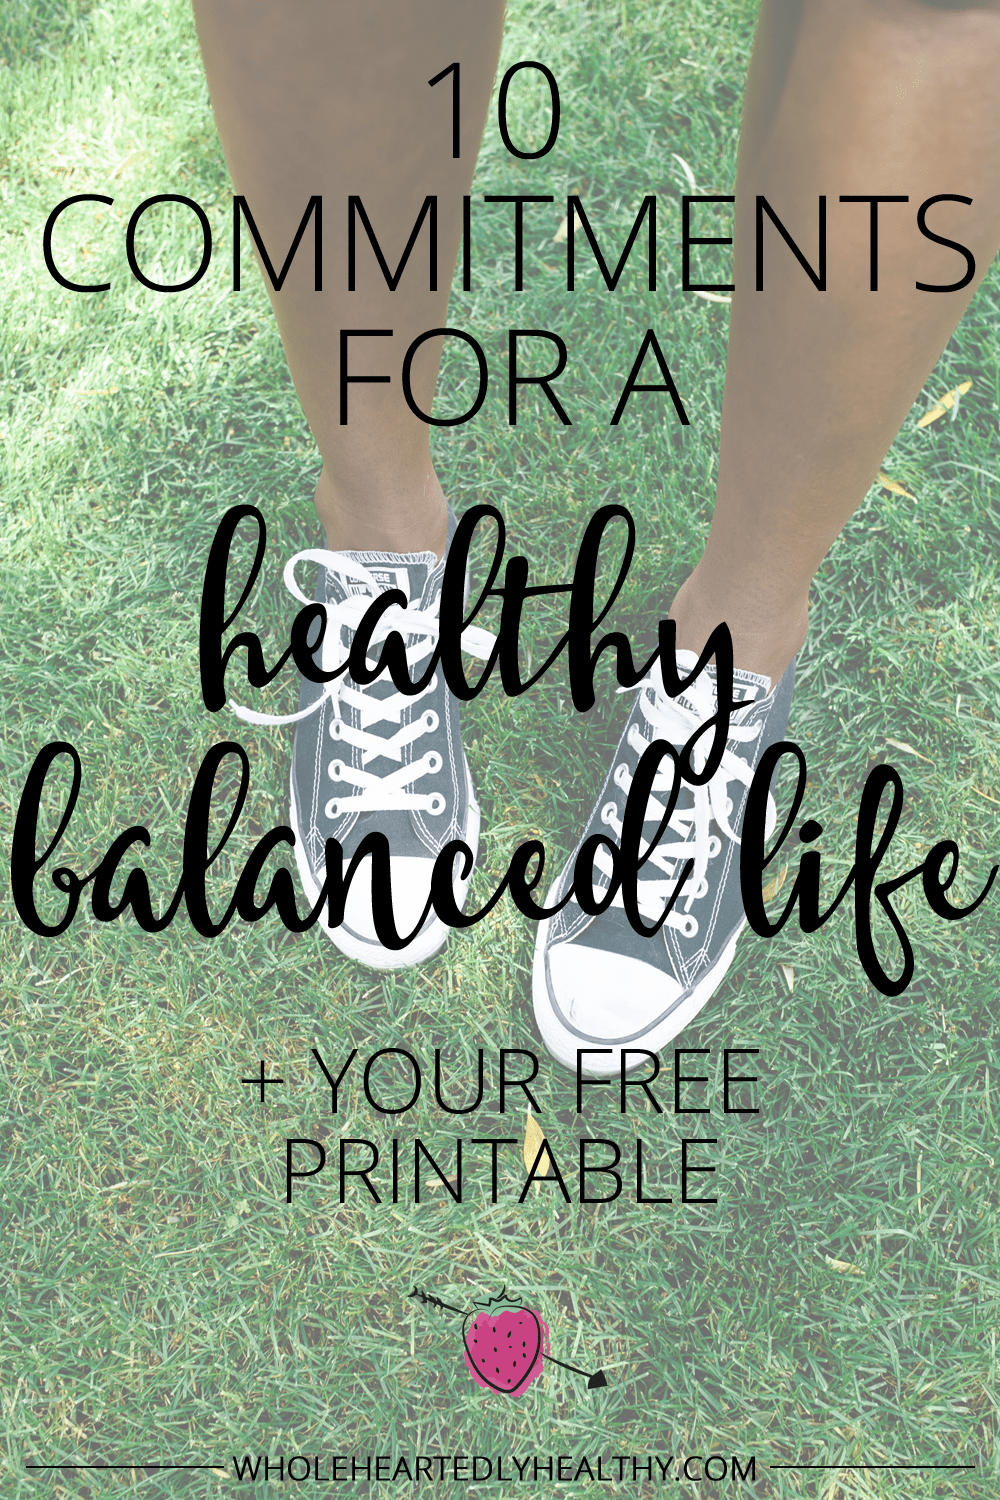 10 commitments for a healthy balanced life